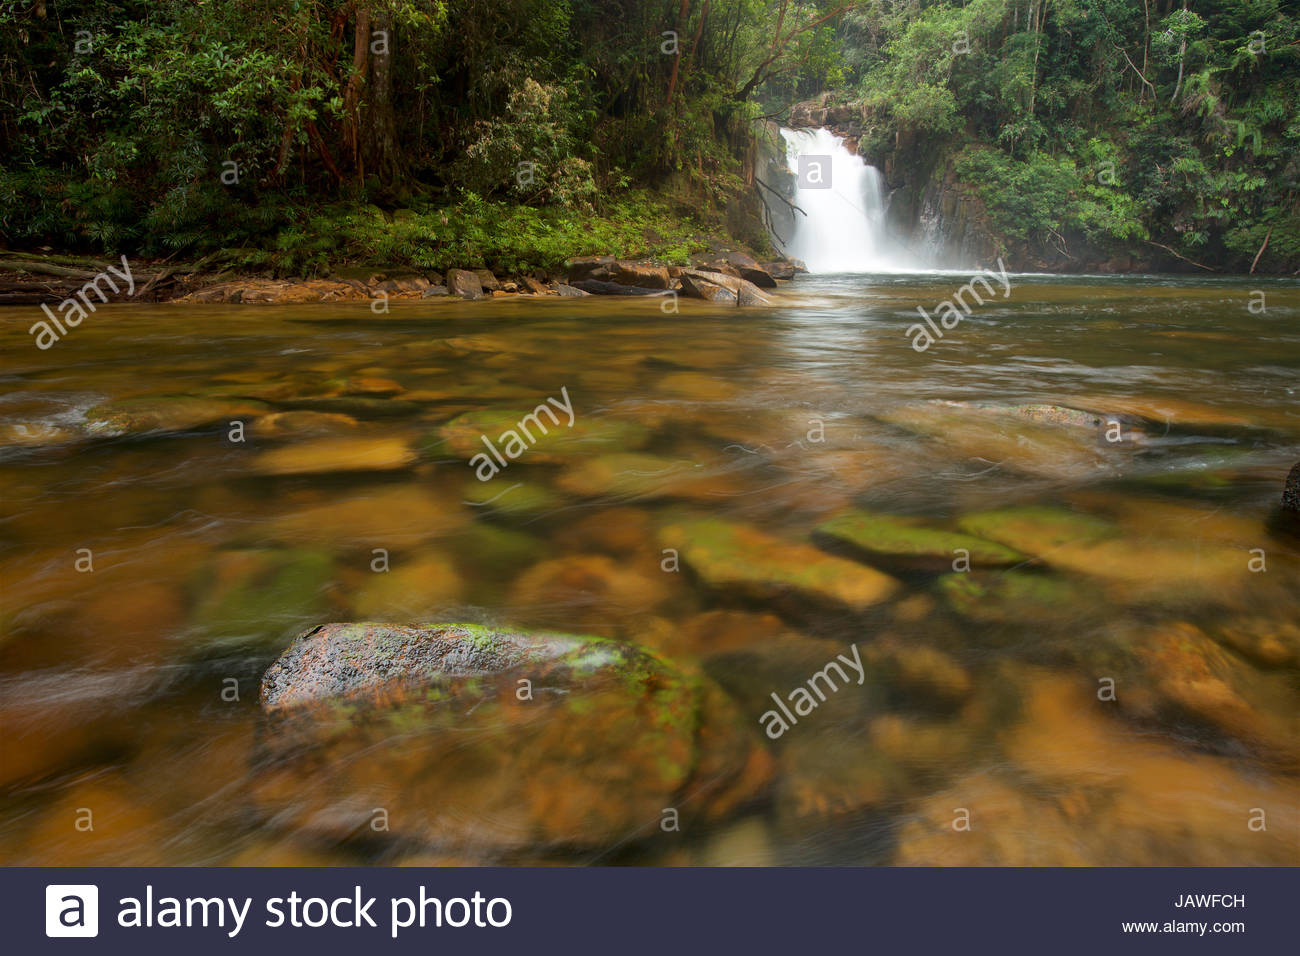 Riam Berasap, the Falls of the Mists, is the largest waterfall in Gunung Palung National Park. - Stock Image